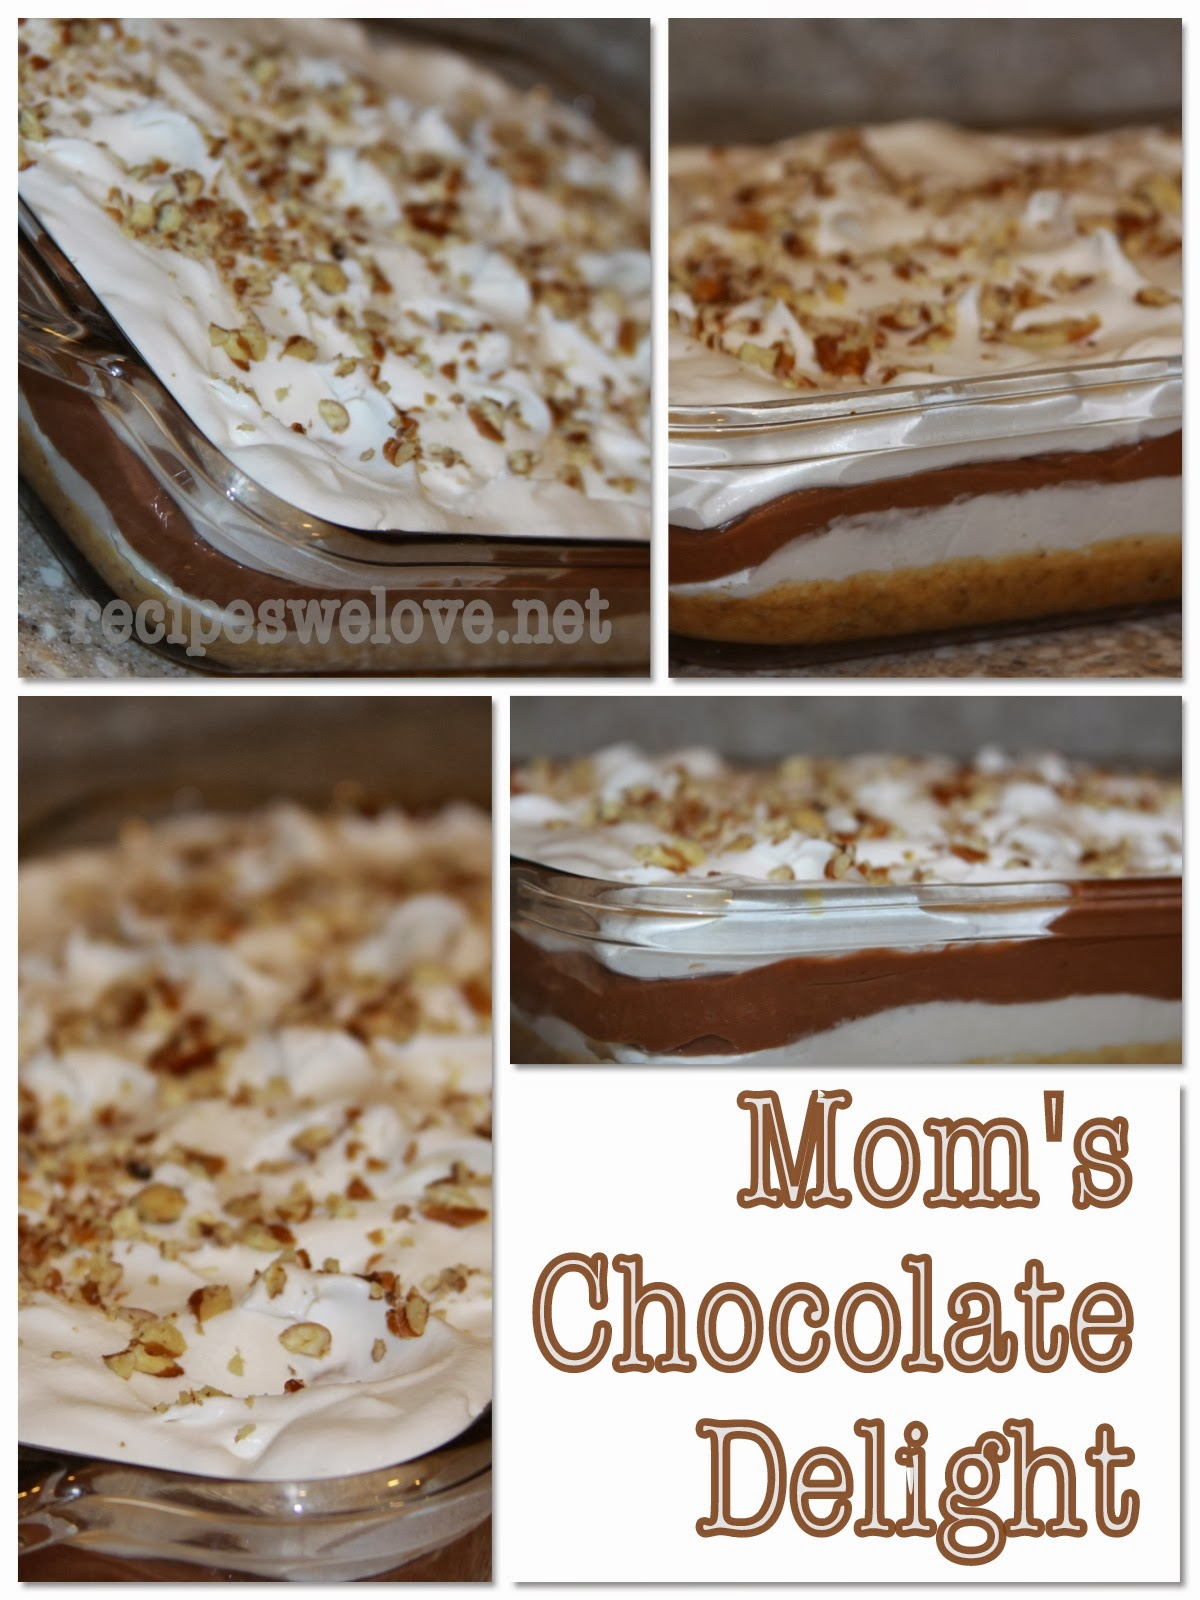 Recipes We Love: Mom's Chocolate Delight